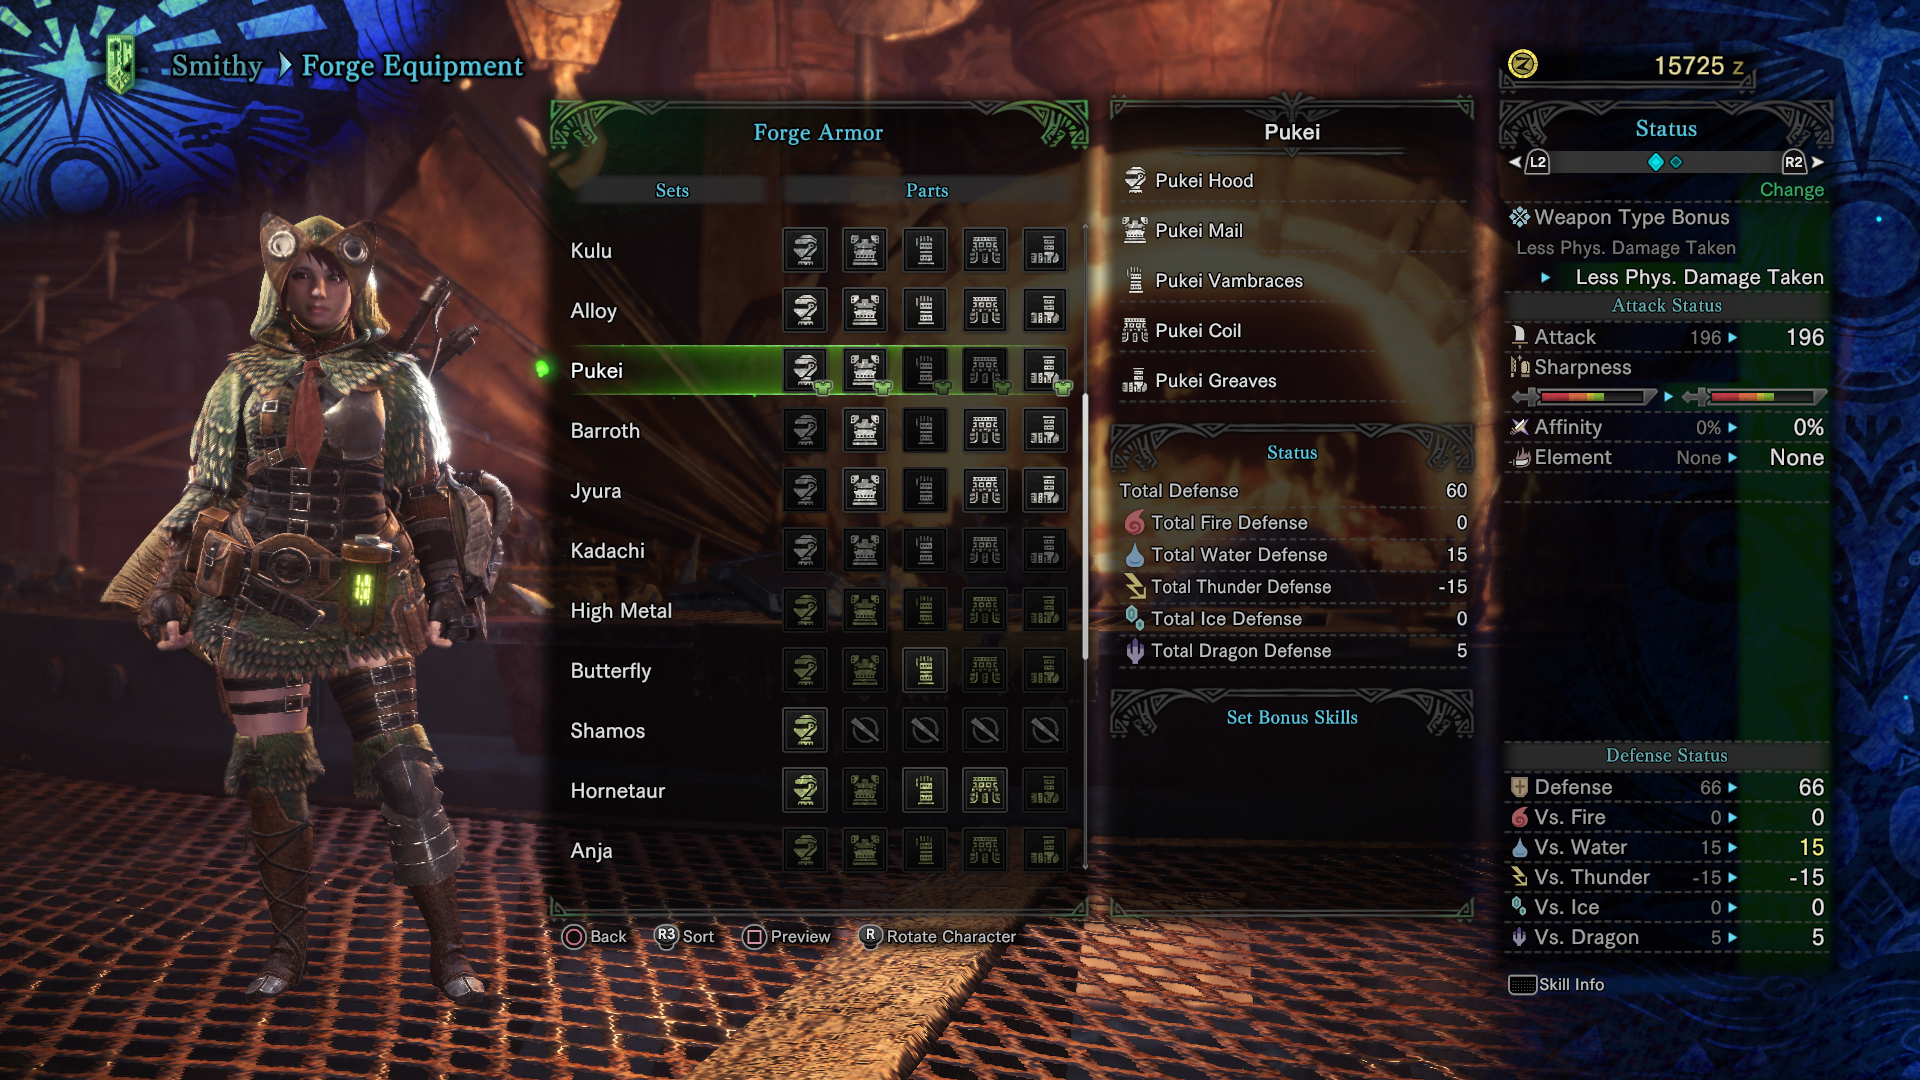 Monster Hunter World Iceborne Armor How To Unlock And Craft Master Rank Armor Usgamer Update 14 made all of the below enhancements uniform across all of the armor types. monster hunter world iceborne armor